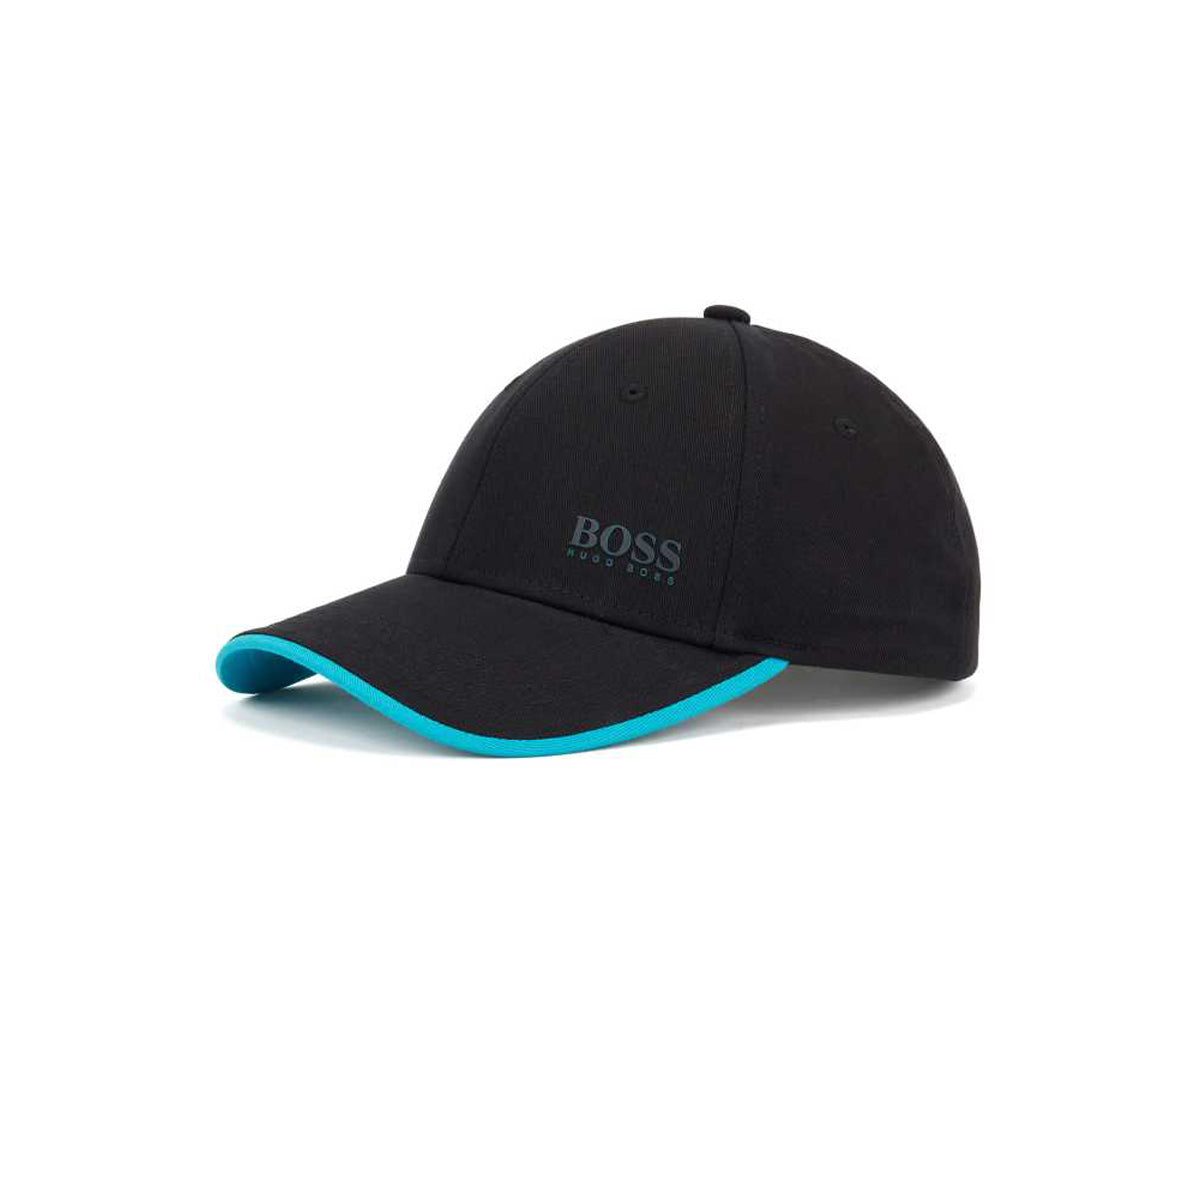 HUGO BOSS CAP-X MEN'S CAP 50430053-001